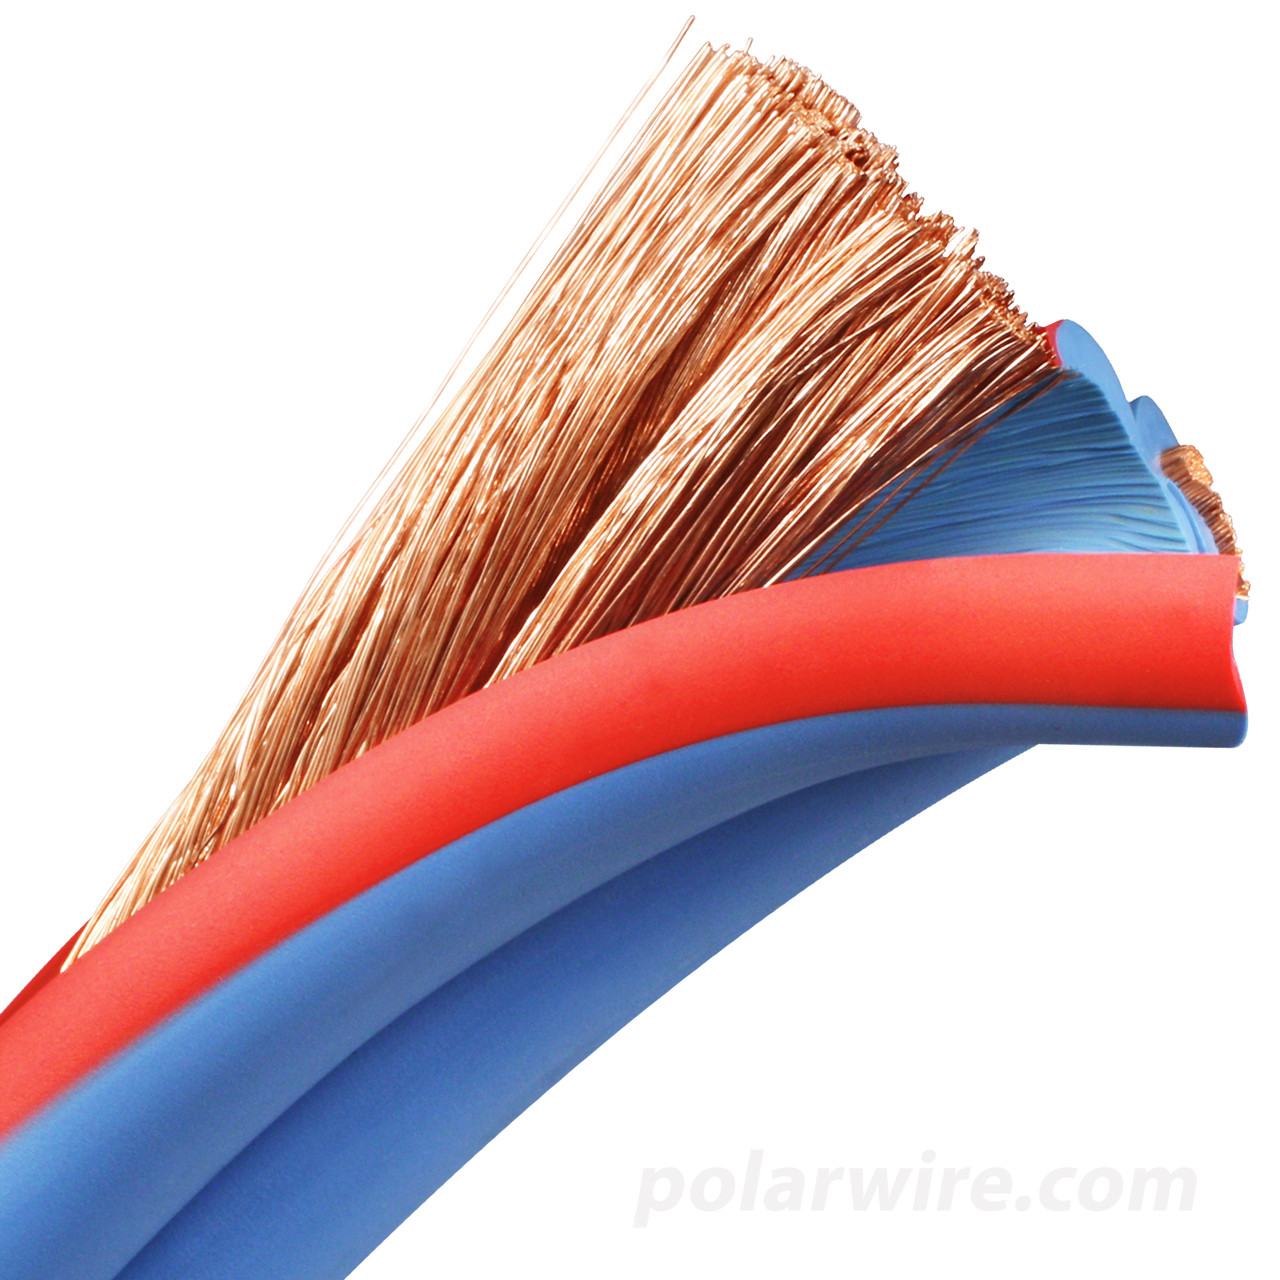 Our jumper cables are built with Arctic Superflex Blue 100% copper fine strand twin wire for flexibility and superior conductivity, even in extreme cold weather